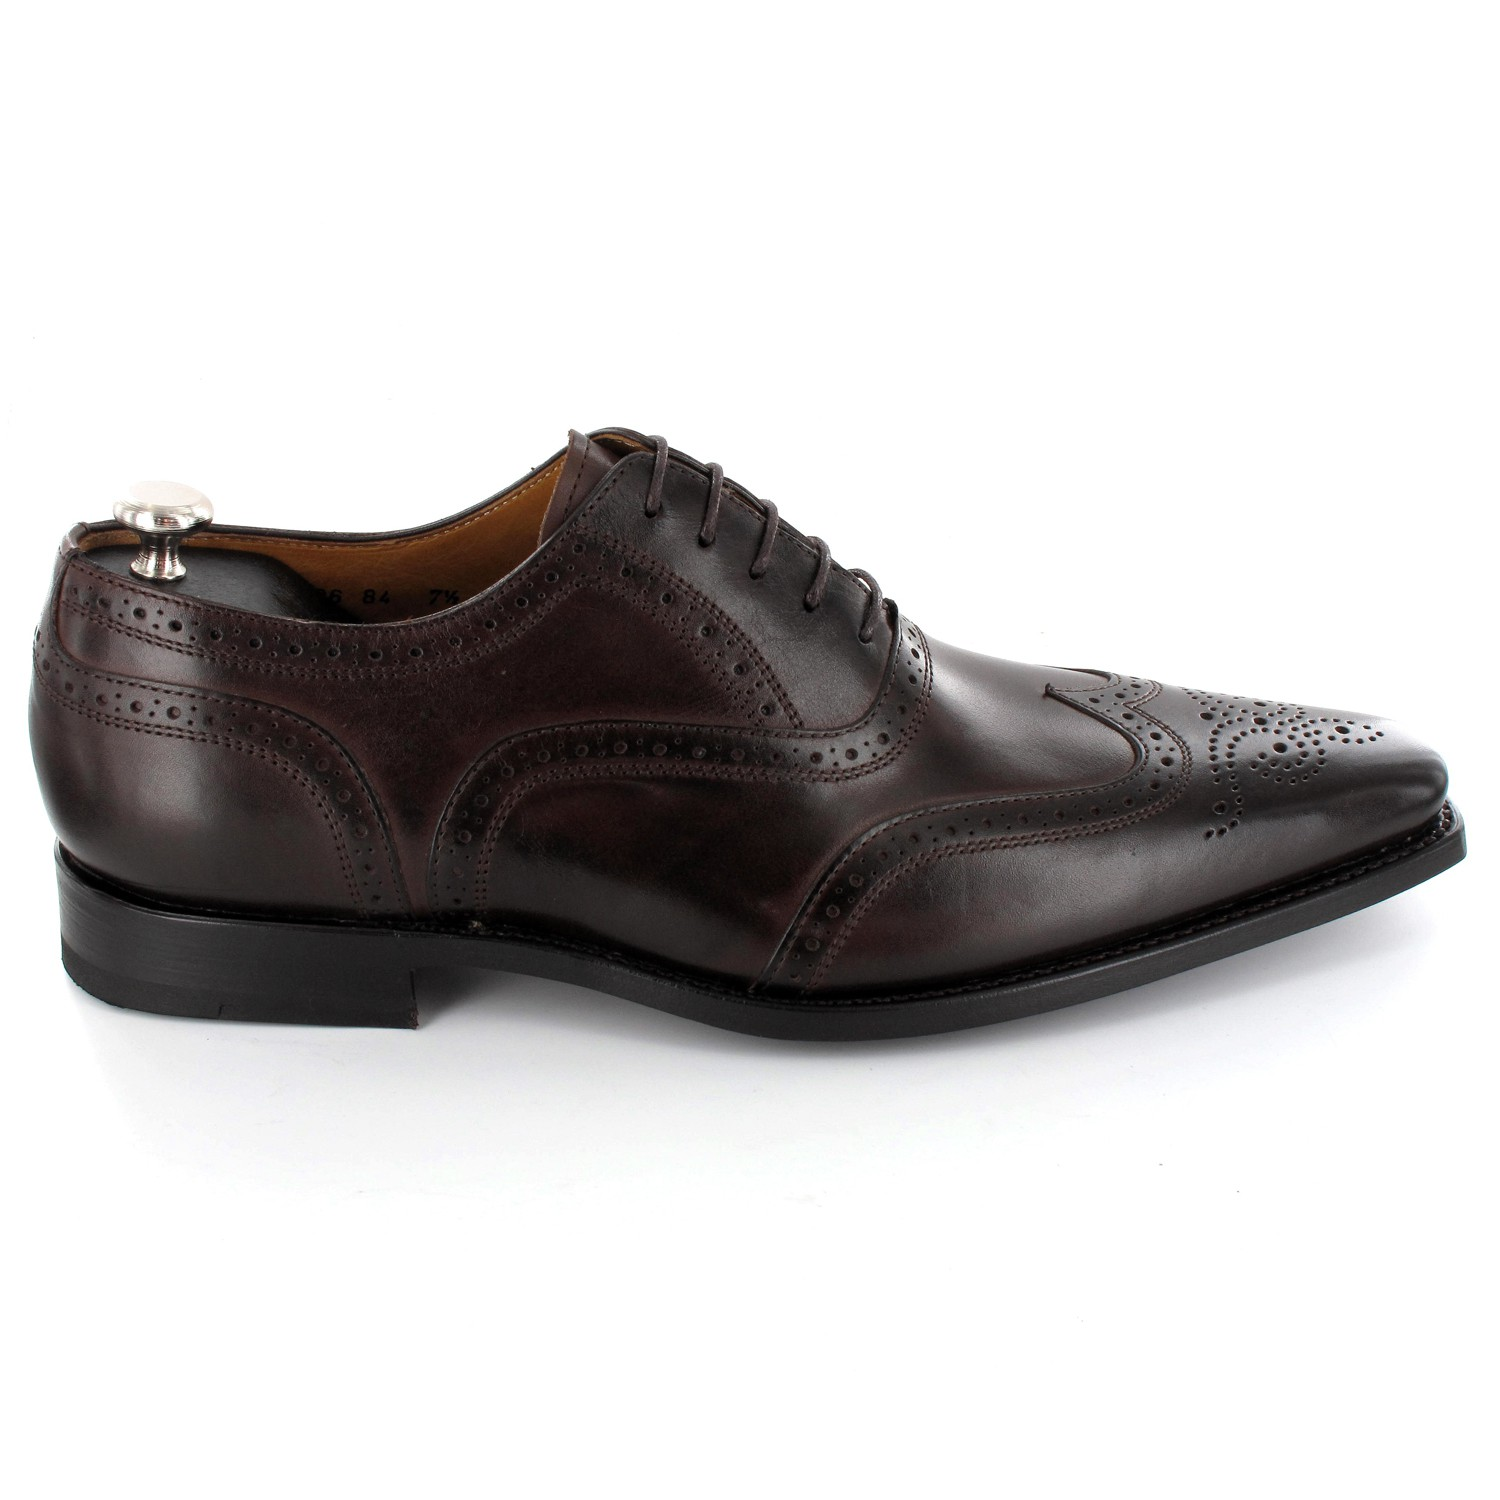 Chzussure Chemise Homme Chaussures Homme